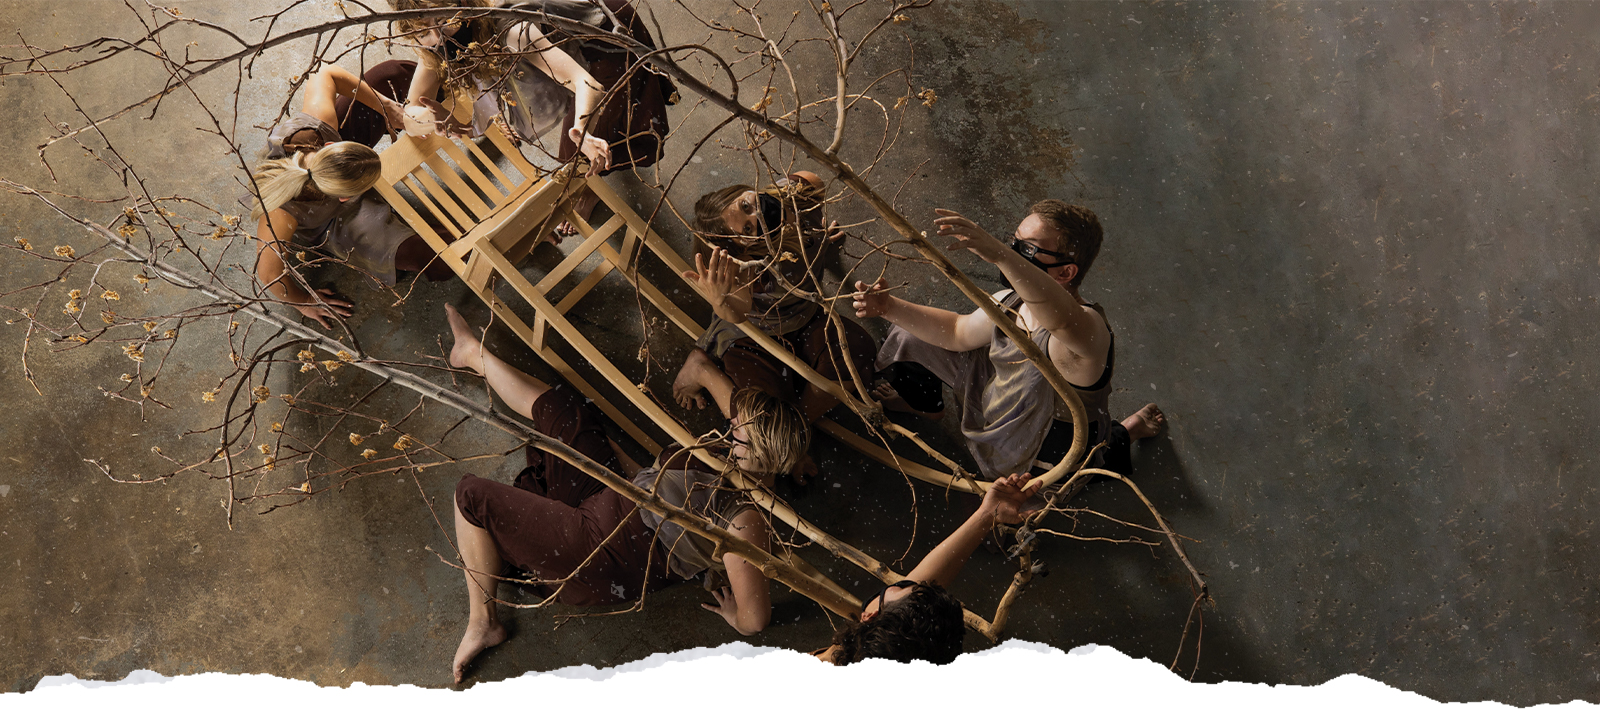 Dancers interact with a sculpture